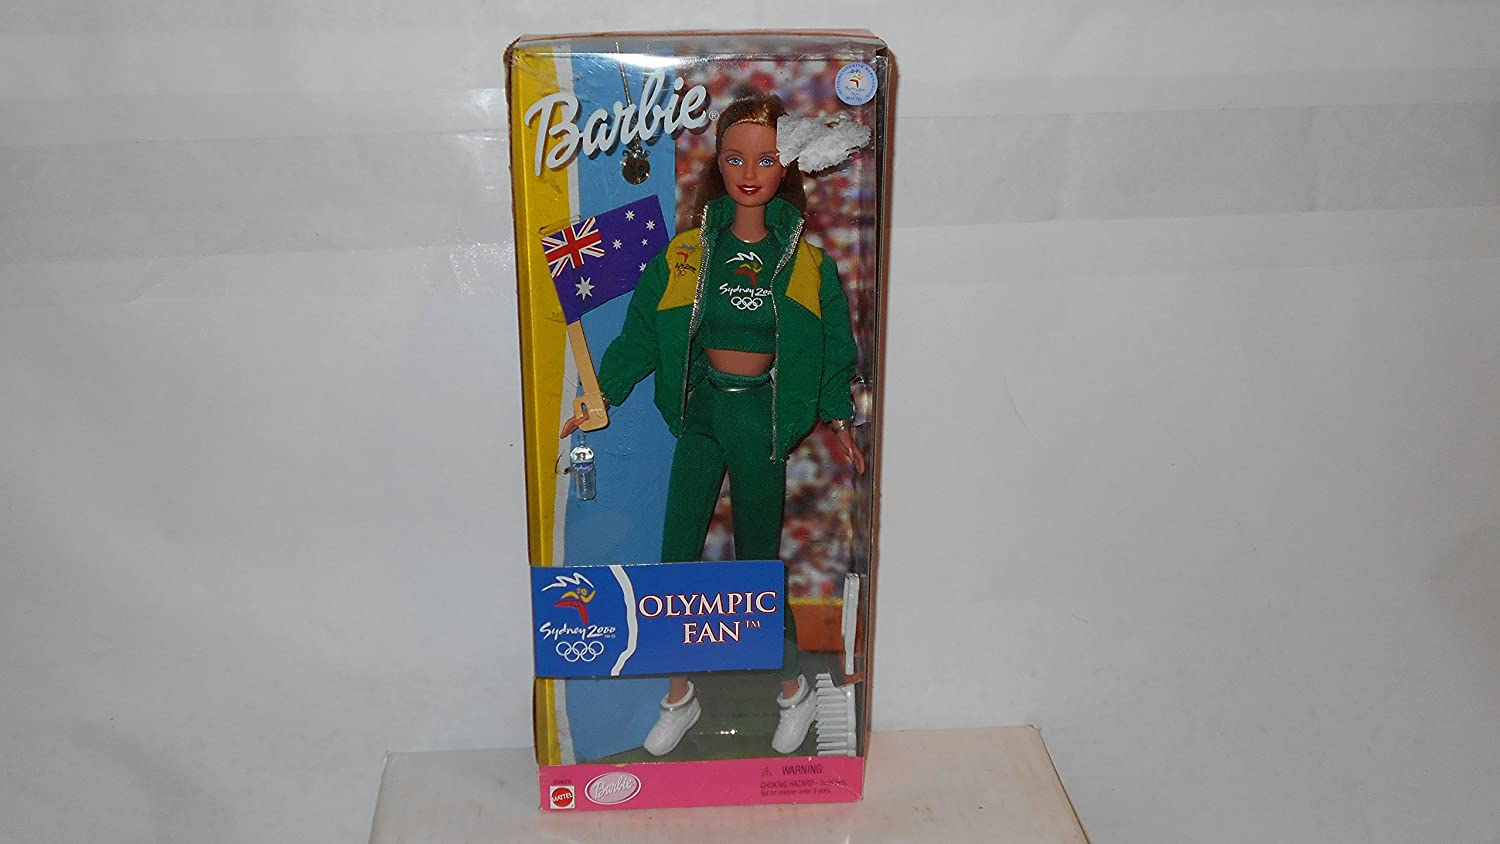 Sydney 2000 Olympic Games Fan Barbie Doll with British Flag